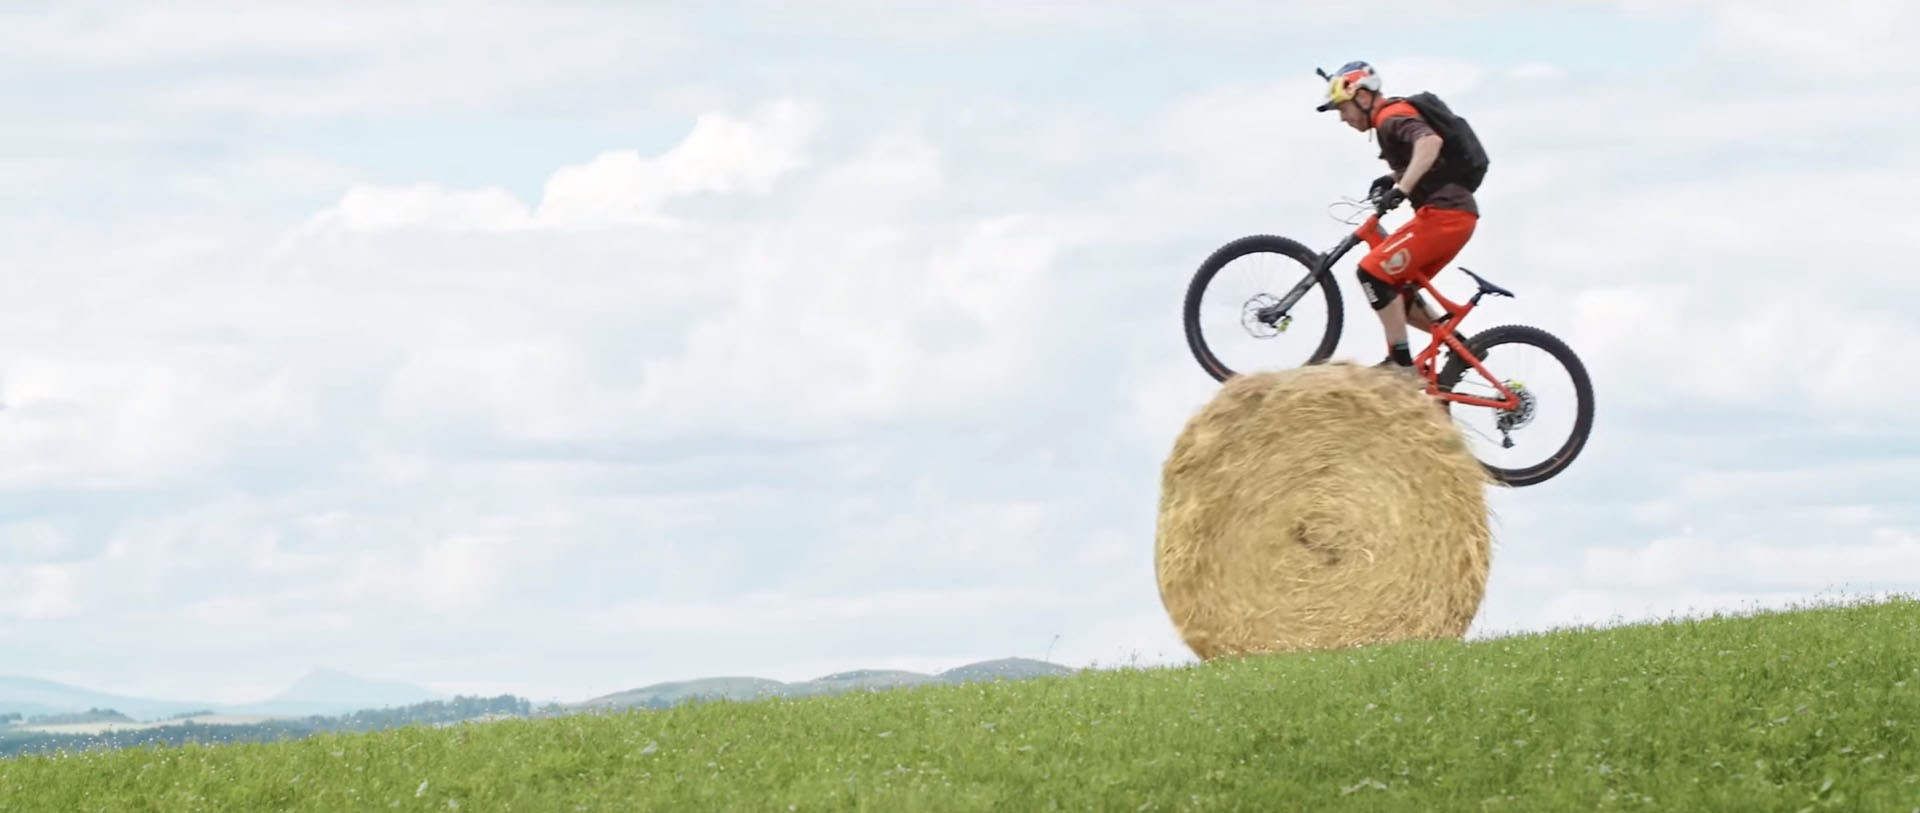 Danny MacAskill's Latest Clip Is a Tourism Brochure for ...